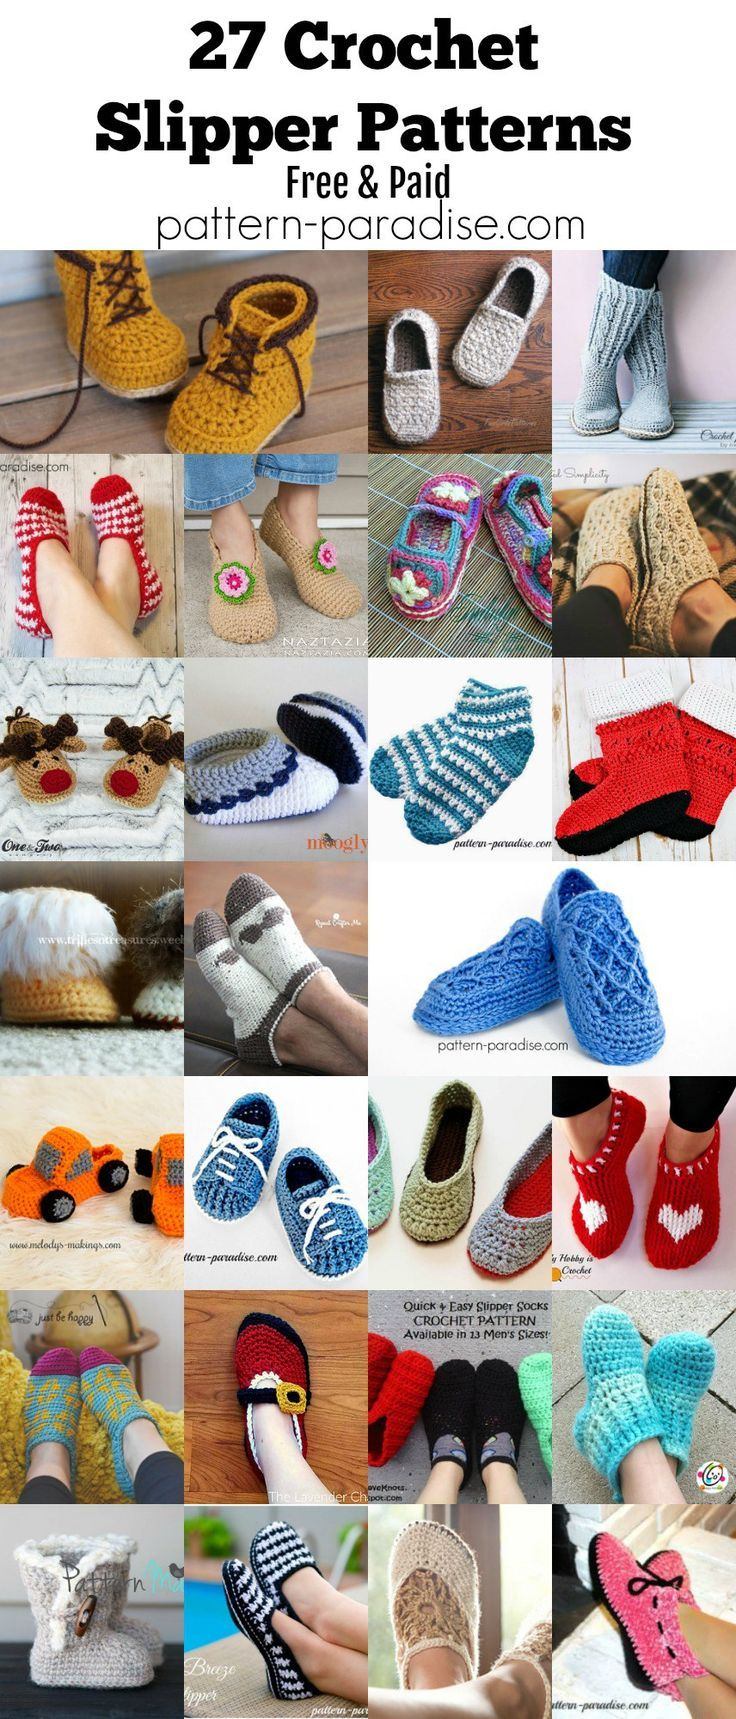 433 best crocheting shoes socks images on pinterest crochet finds crocheted slippers pattern paradise bankloansurffo Image collections